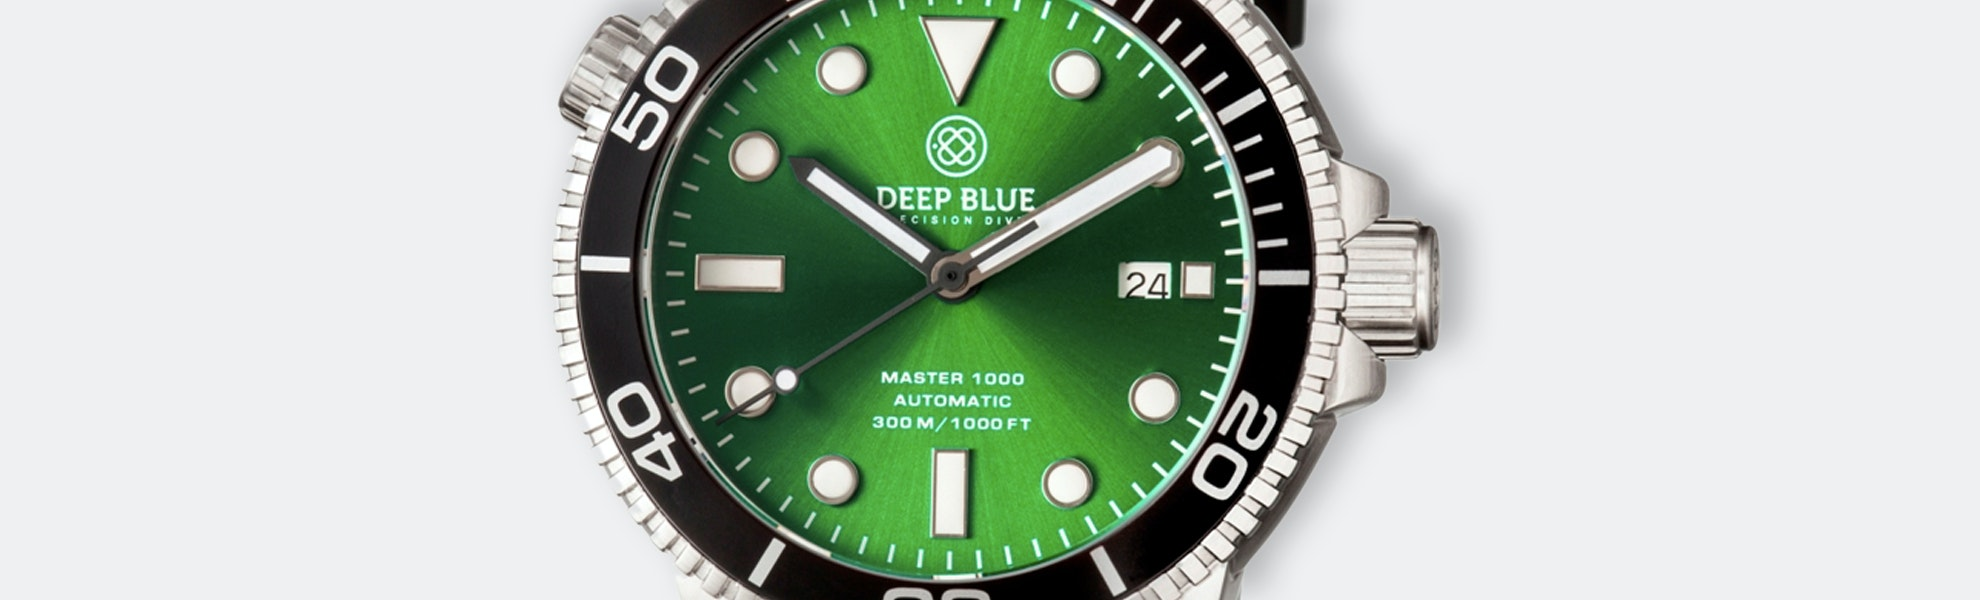 Deep Blue Master 1000 Automatic Watch